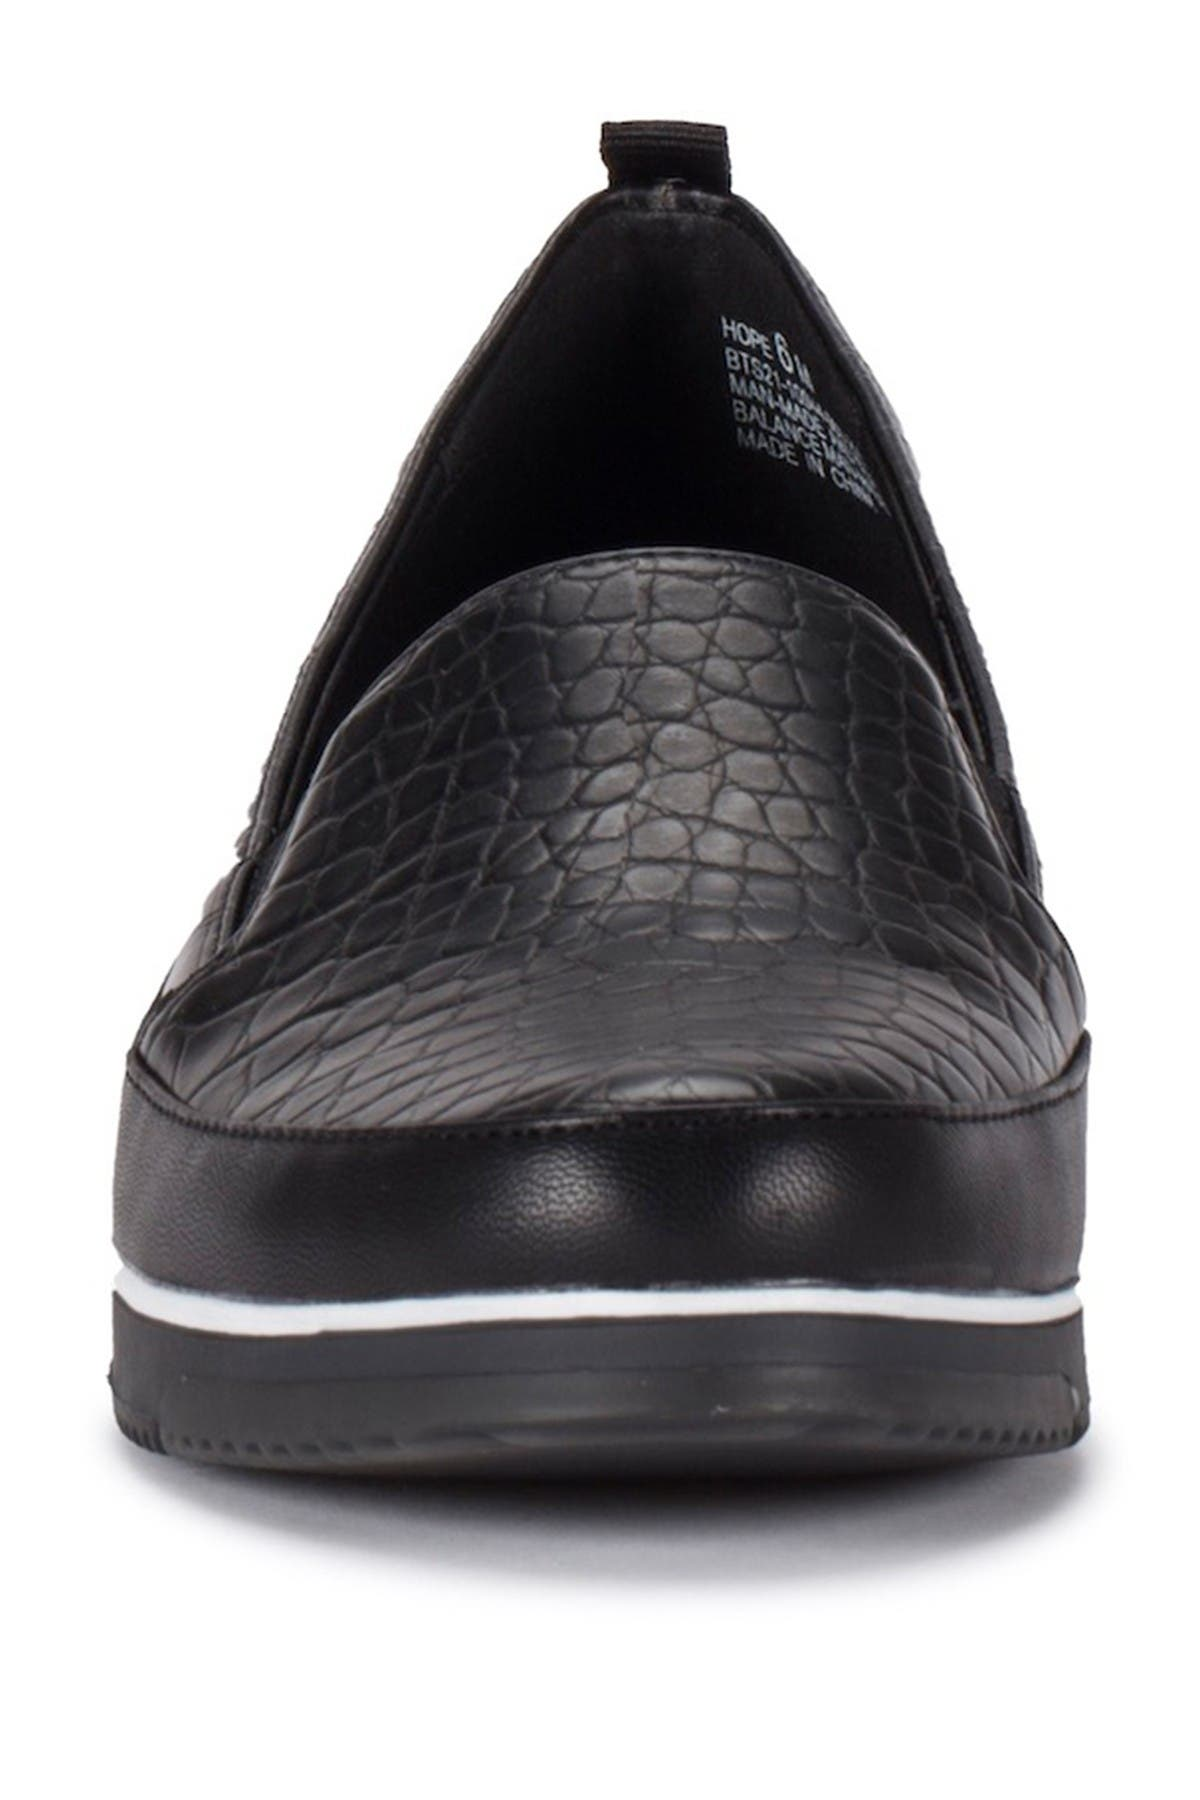 Baretraps HOPE CASUAL SLIP-ON LOAFER